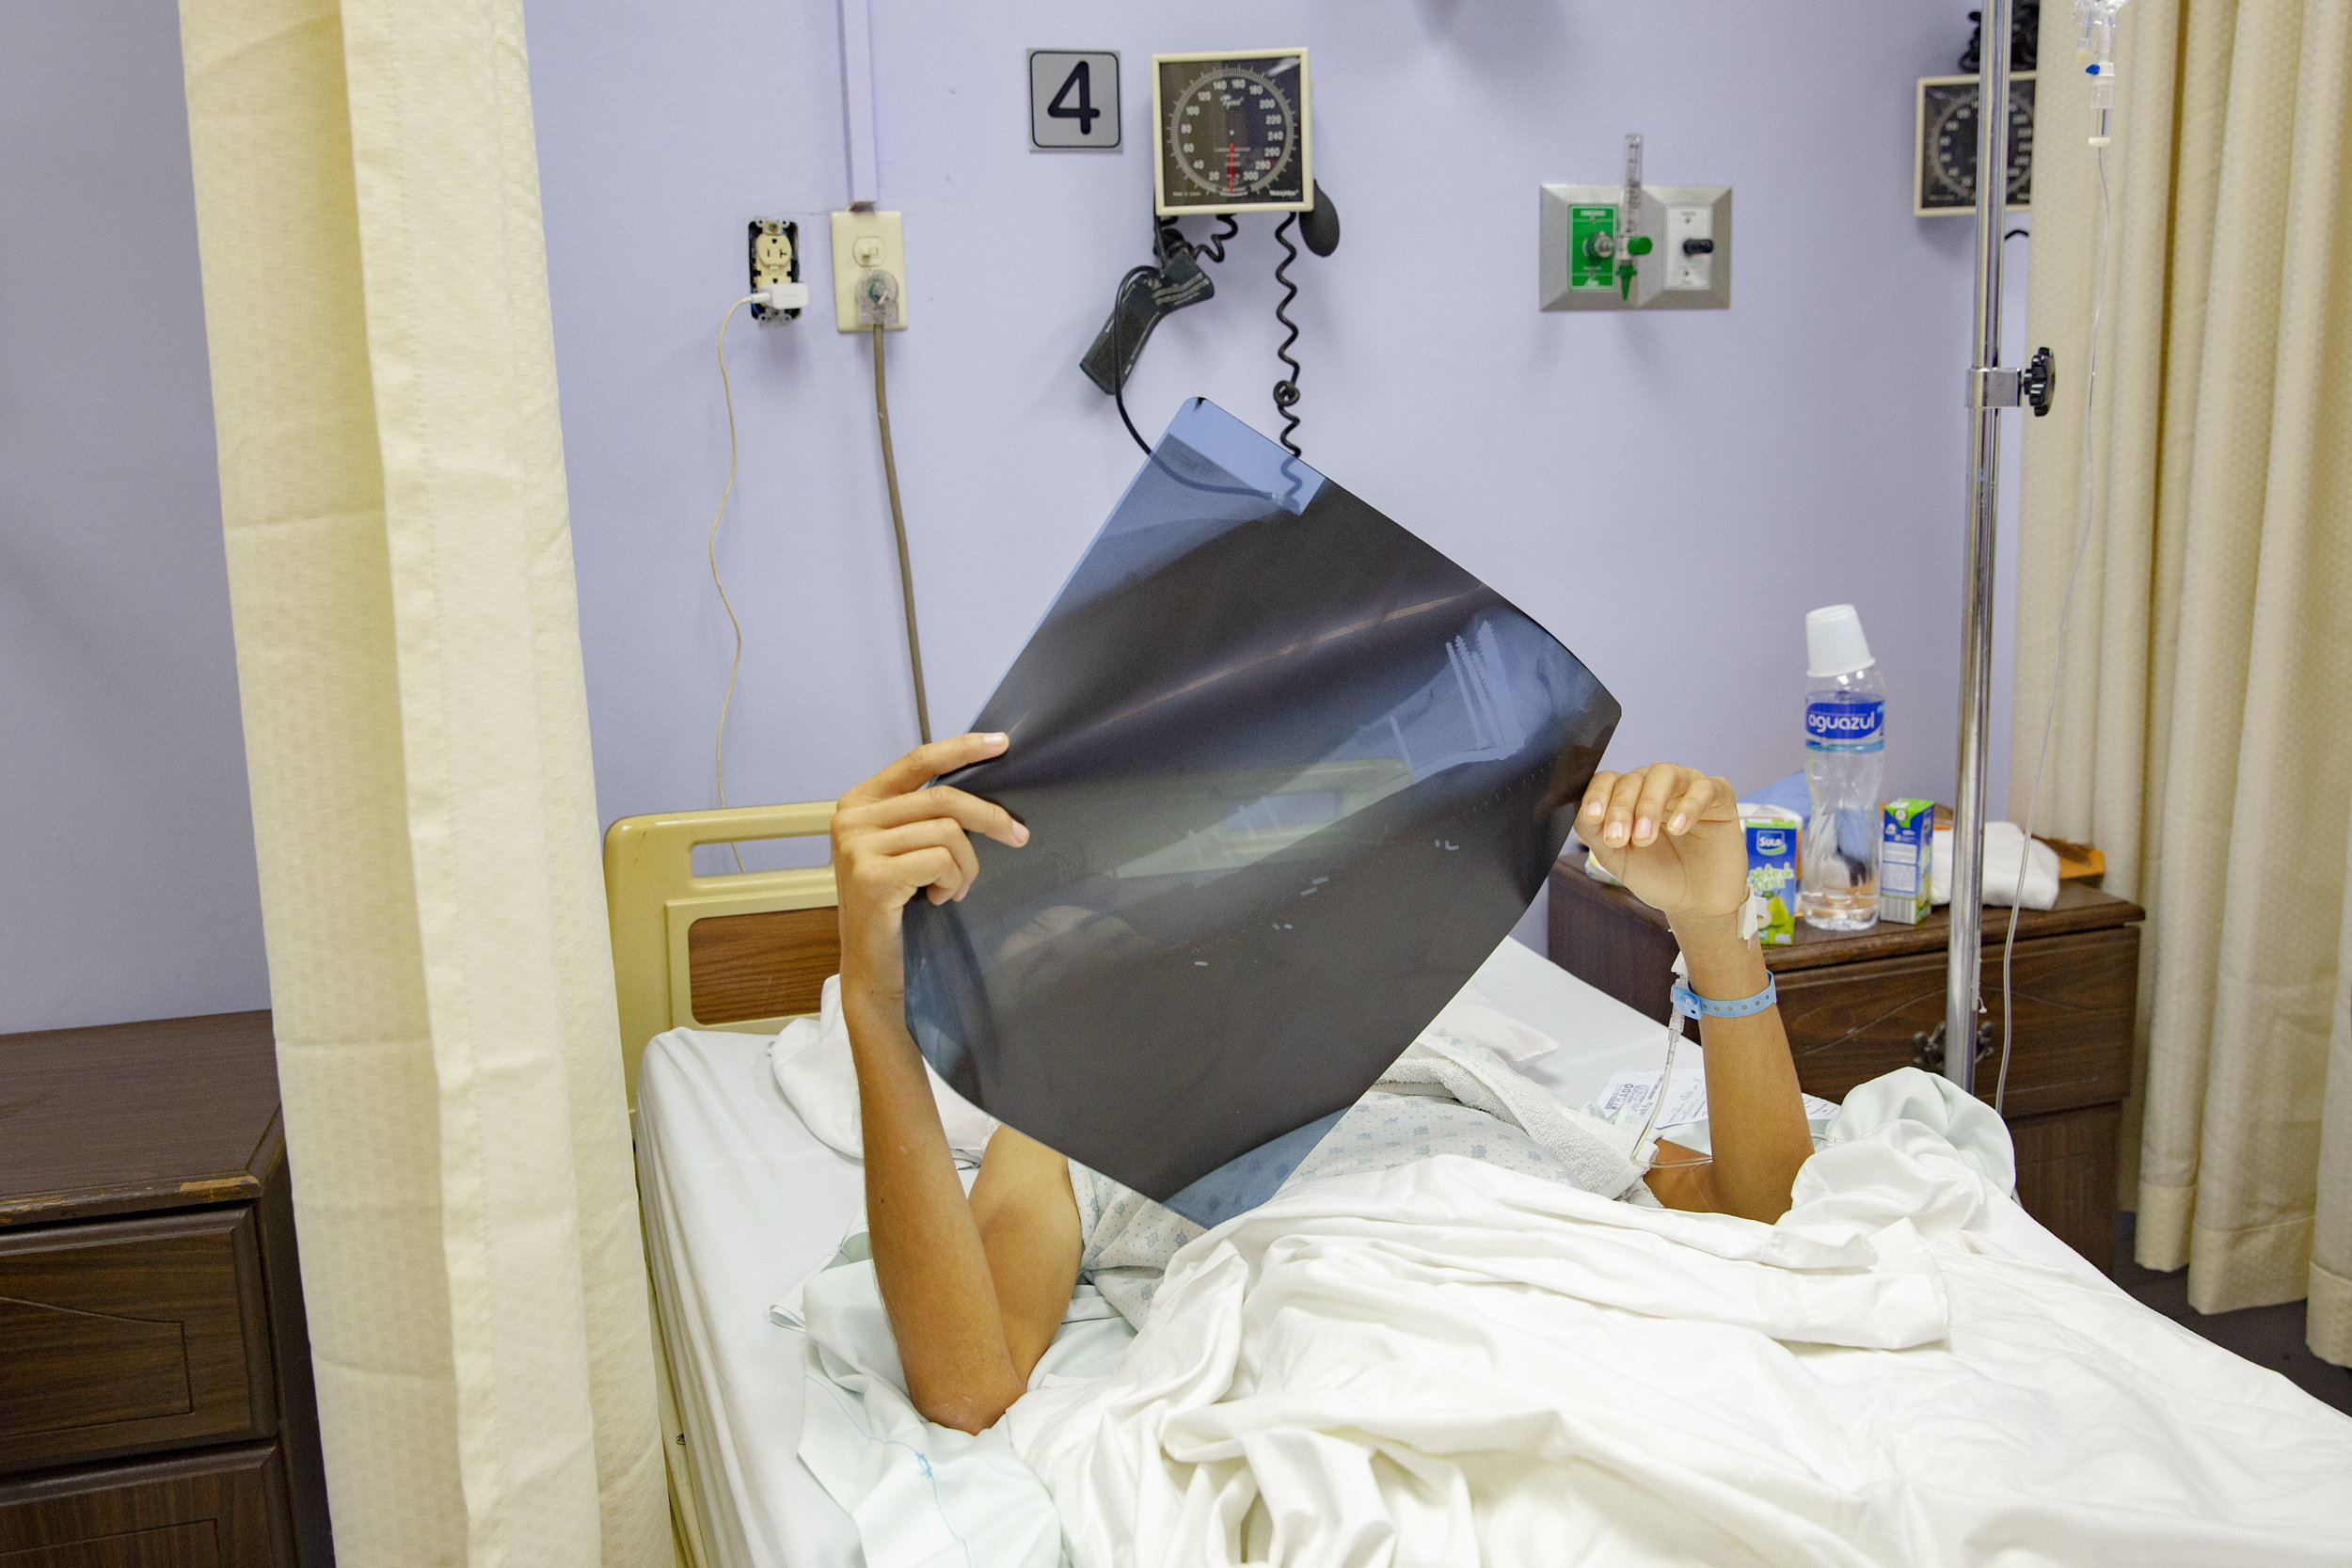 """Franklin Lopez, 19, lies in a bed looking at the results of an ultrasound exam at the Ruth Paz hospital in San Pedro Sula, Honduras. He broke his femur when he was on a motorbike with his friend. """"We were just playing, it was an accident"""" he says, visibly in pain. After the accident he spent twenty-one days at the public hospital without being treated for his fracture, then his mother took him to the Ruth Paz hospital an he was operated three days after his arrival."""